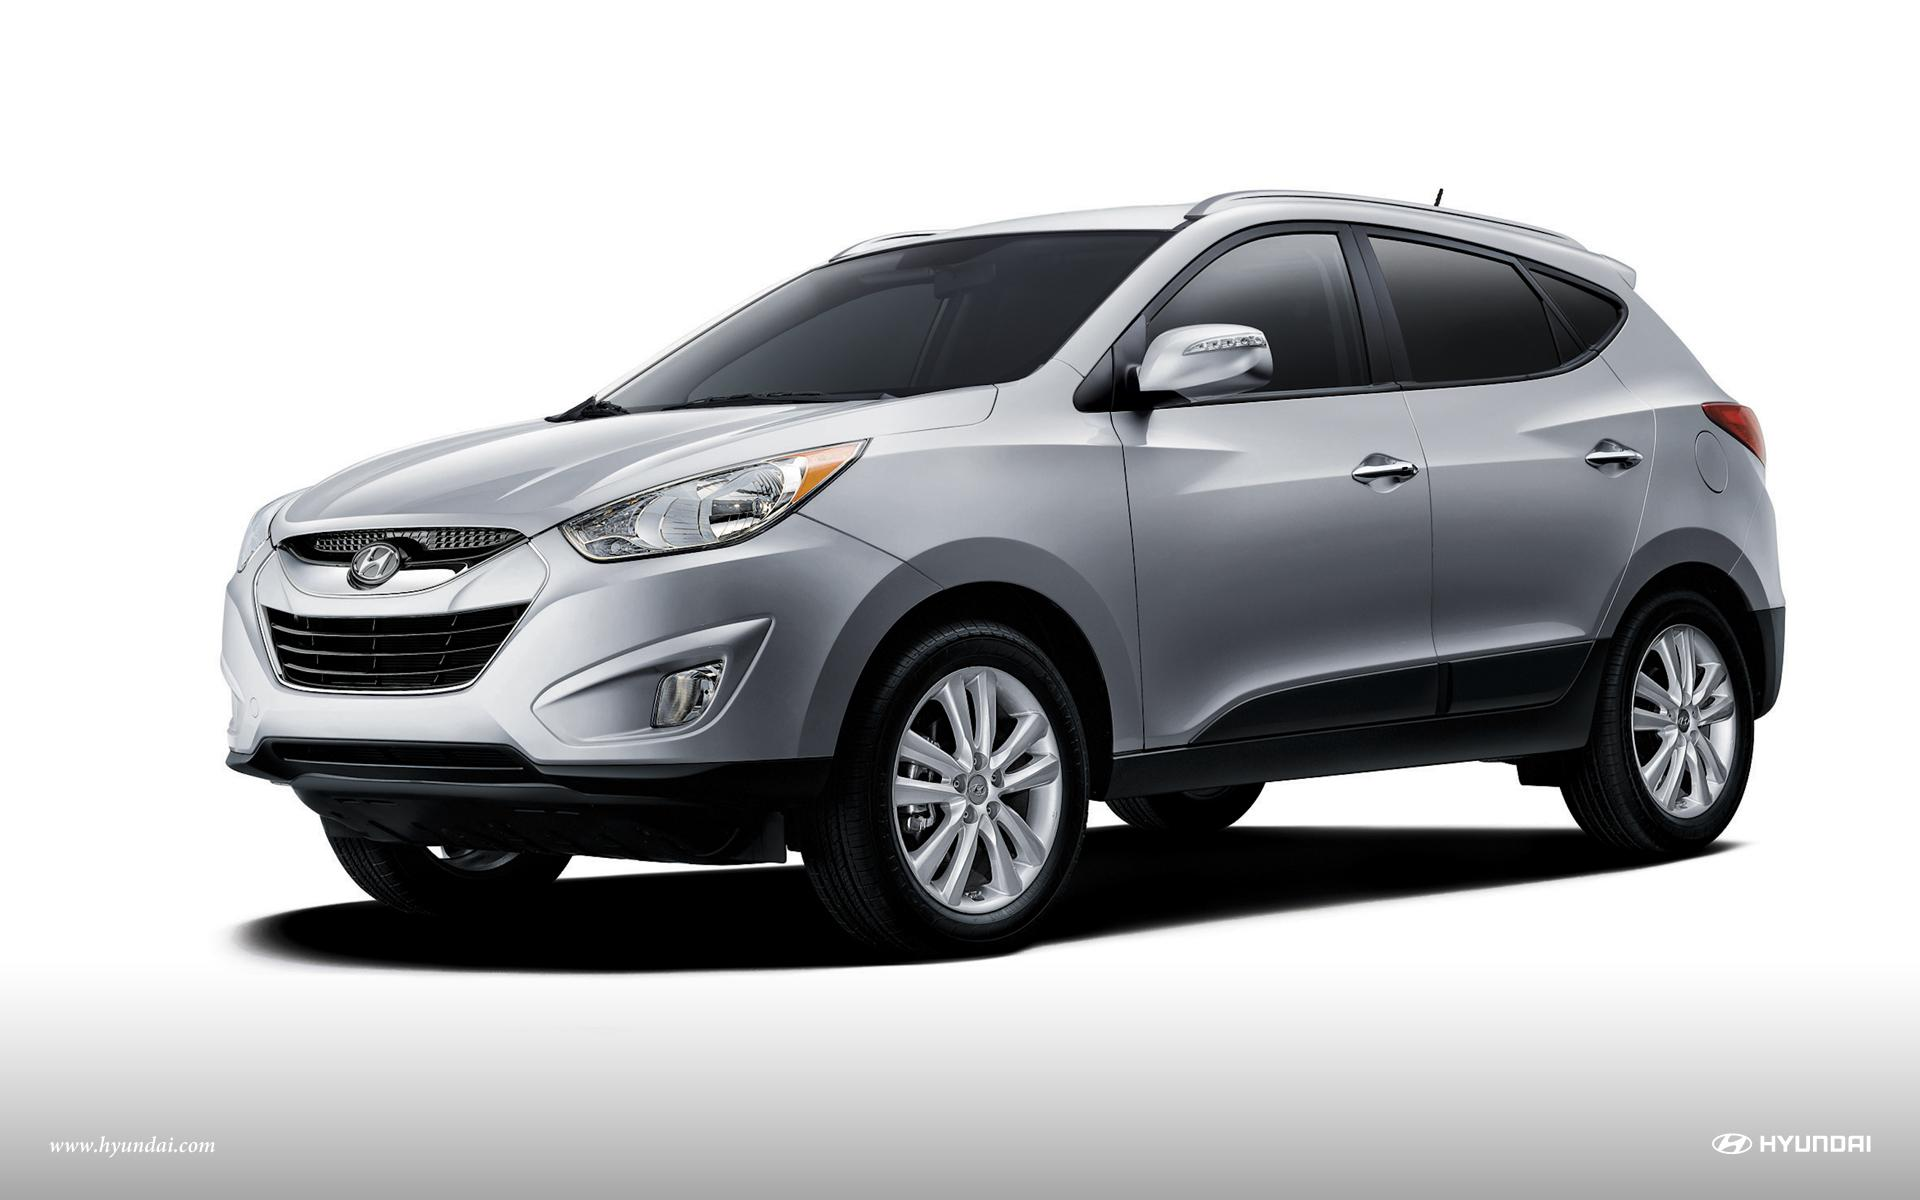 2013 hyundai tucson technical specifications and data engine dimensions and mechanical details. Black Bedroom Furniture Sets. Home Design Ideas